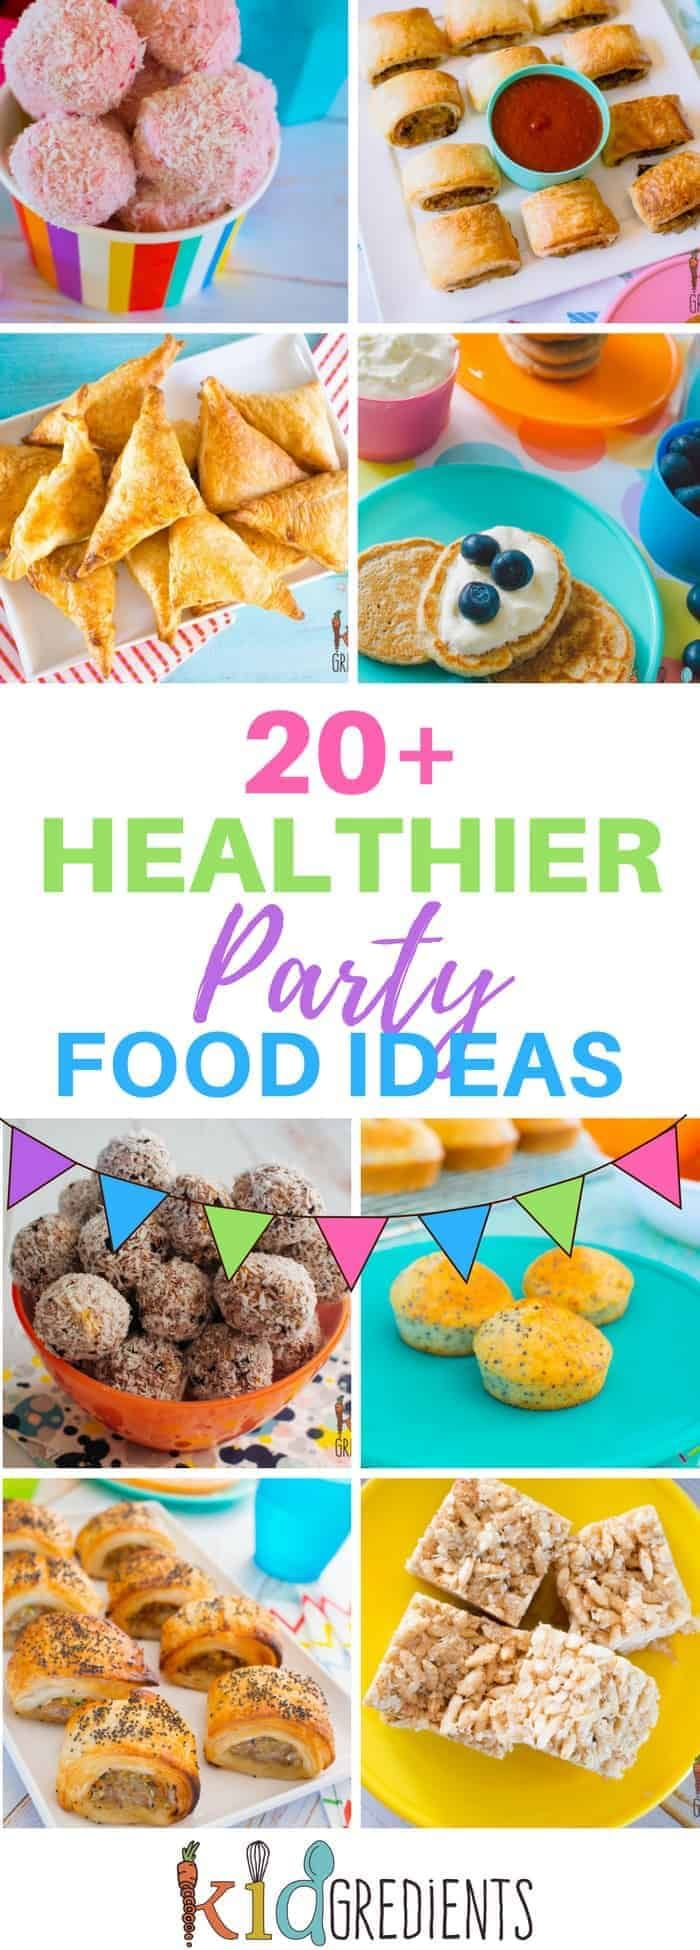 20+ healthier party food ideas, low sugar and non storebought options!